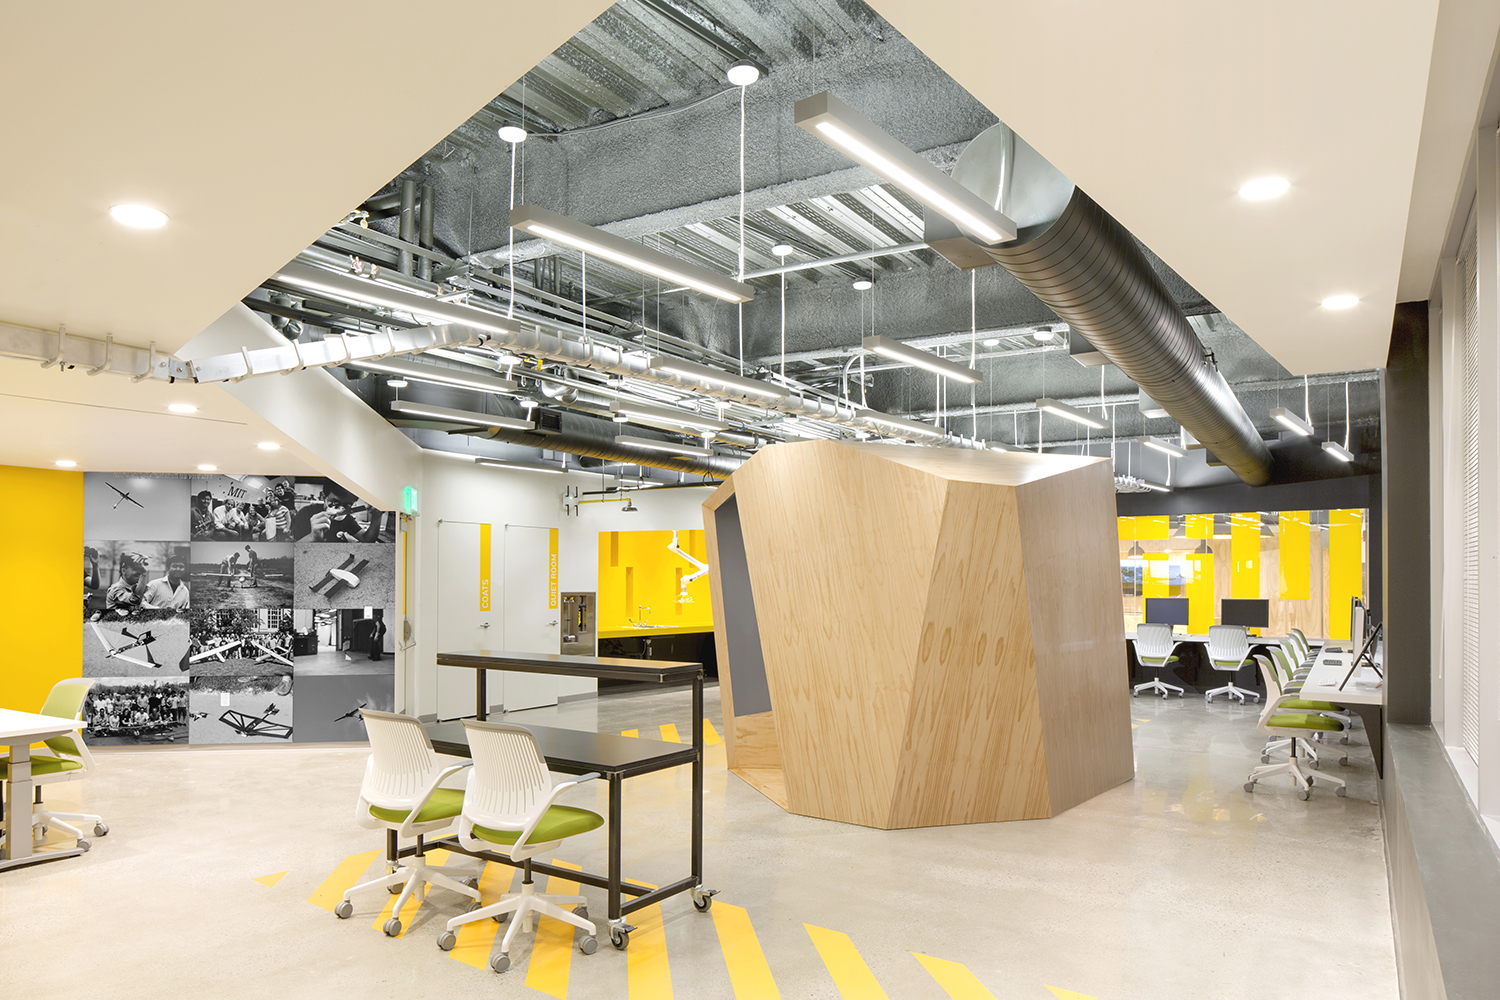 Co lab mit beaver works bsa design awards boston society of architects Architects and interior designers